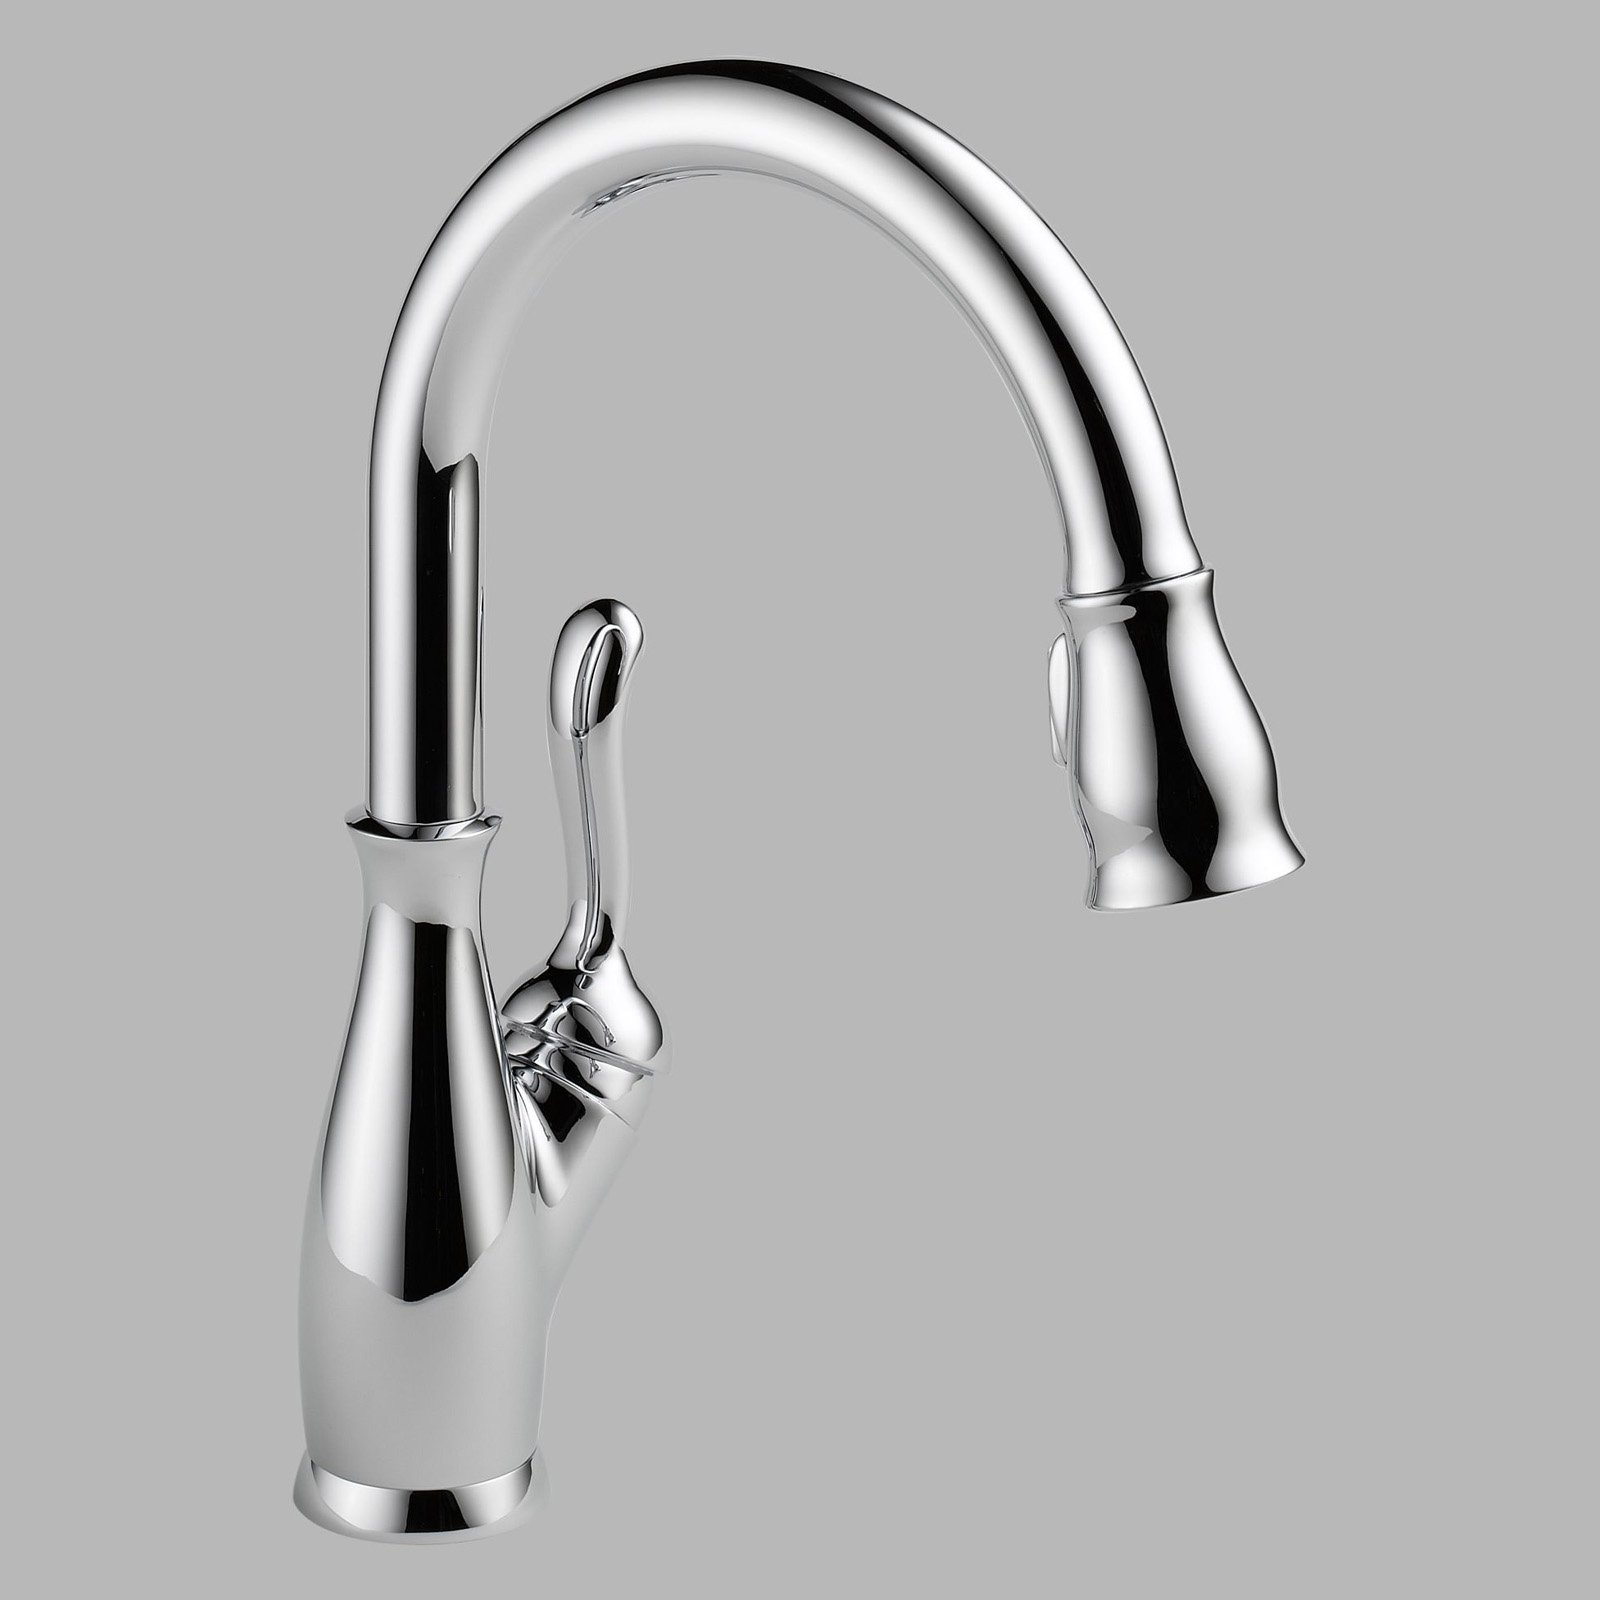 delta faucets for kitchen delta leland kitchen faucet with pull down spray available in various colors walmart com 1356